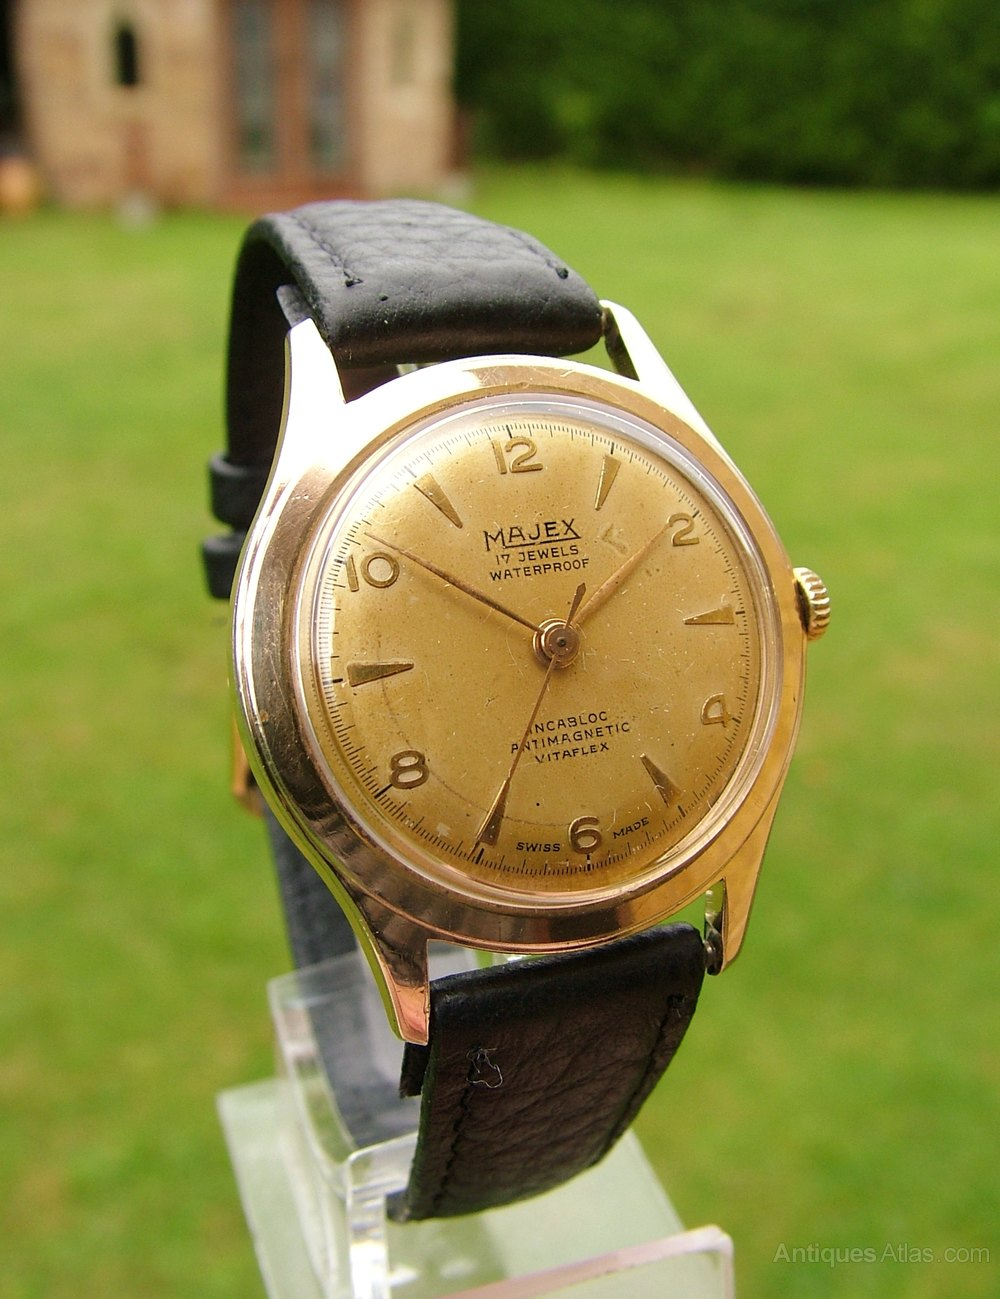 Antiques Atlas - Gents 1950s Majex Hand Winding Wrist Watch.